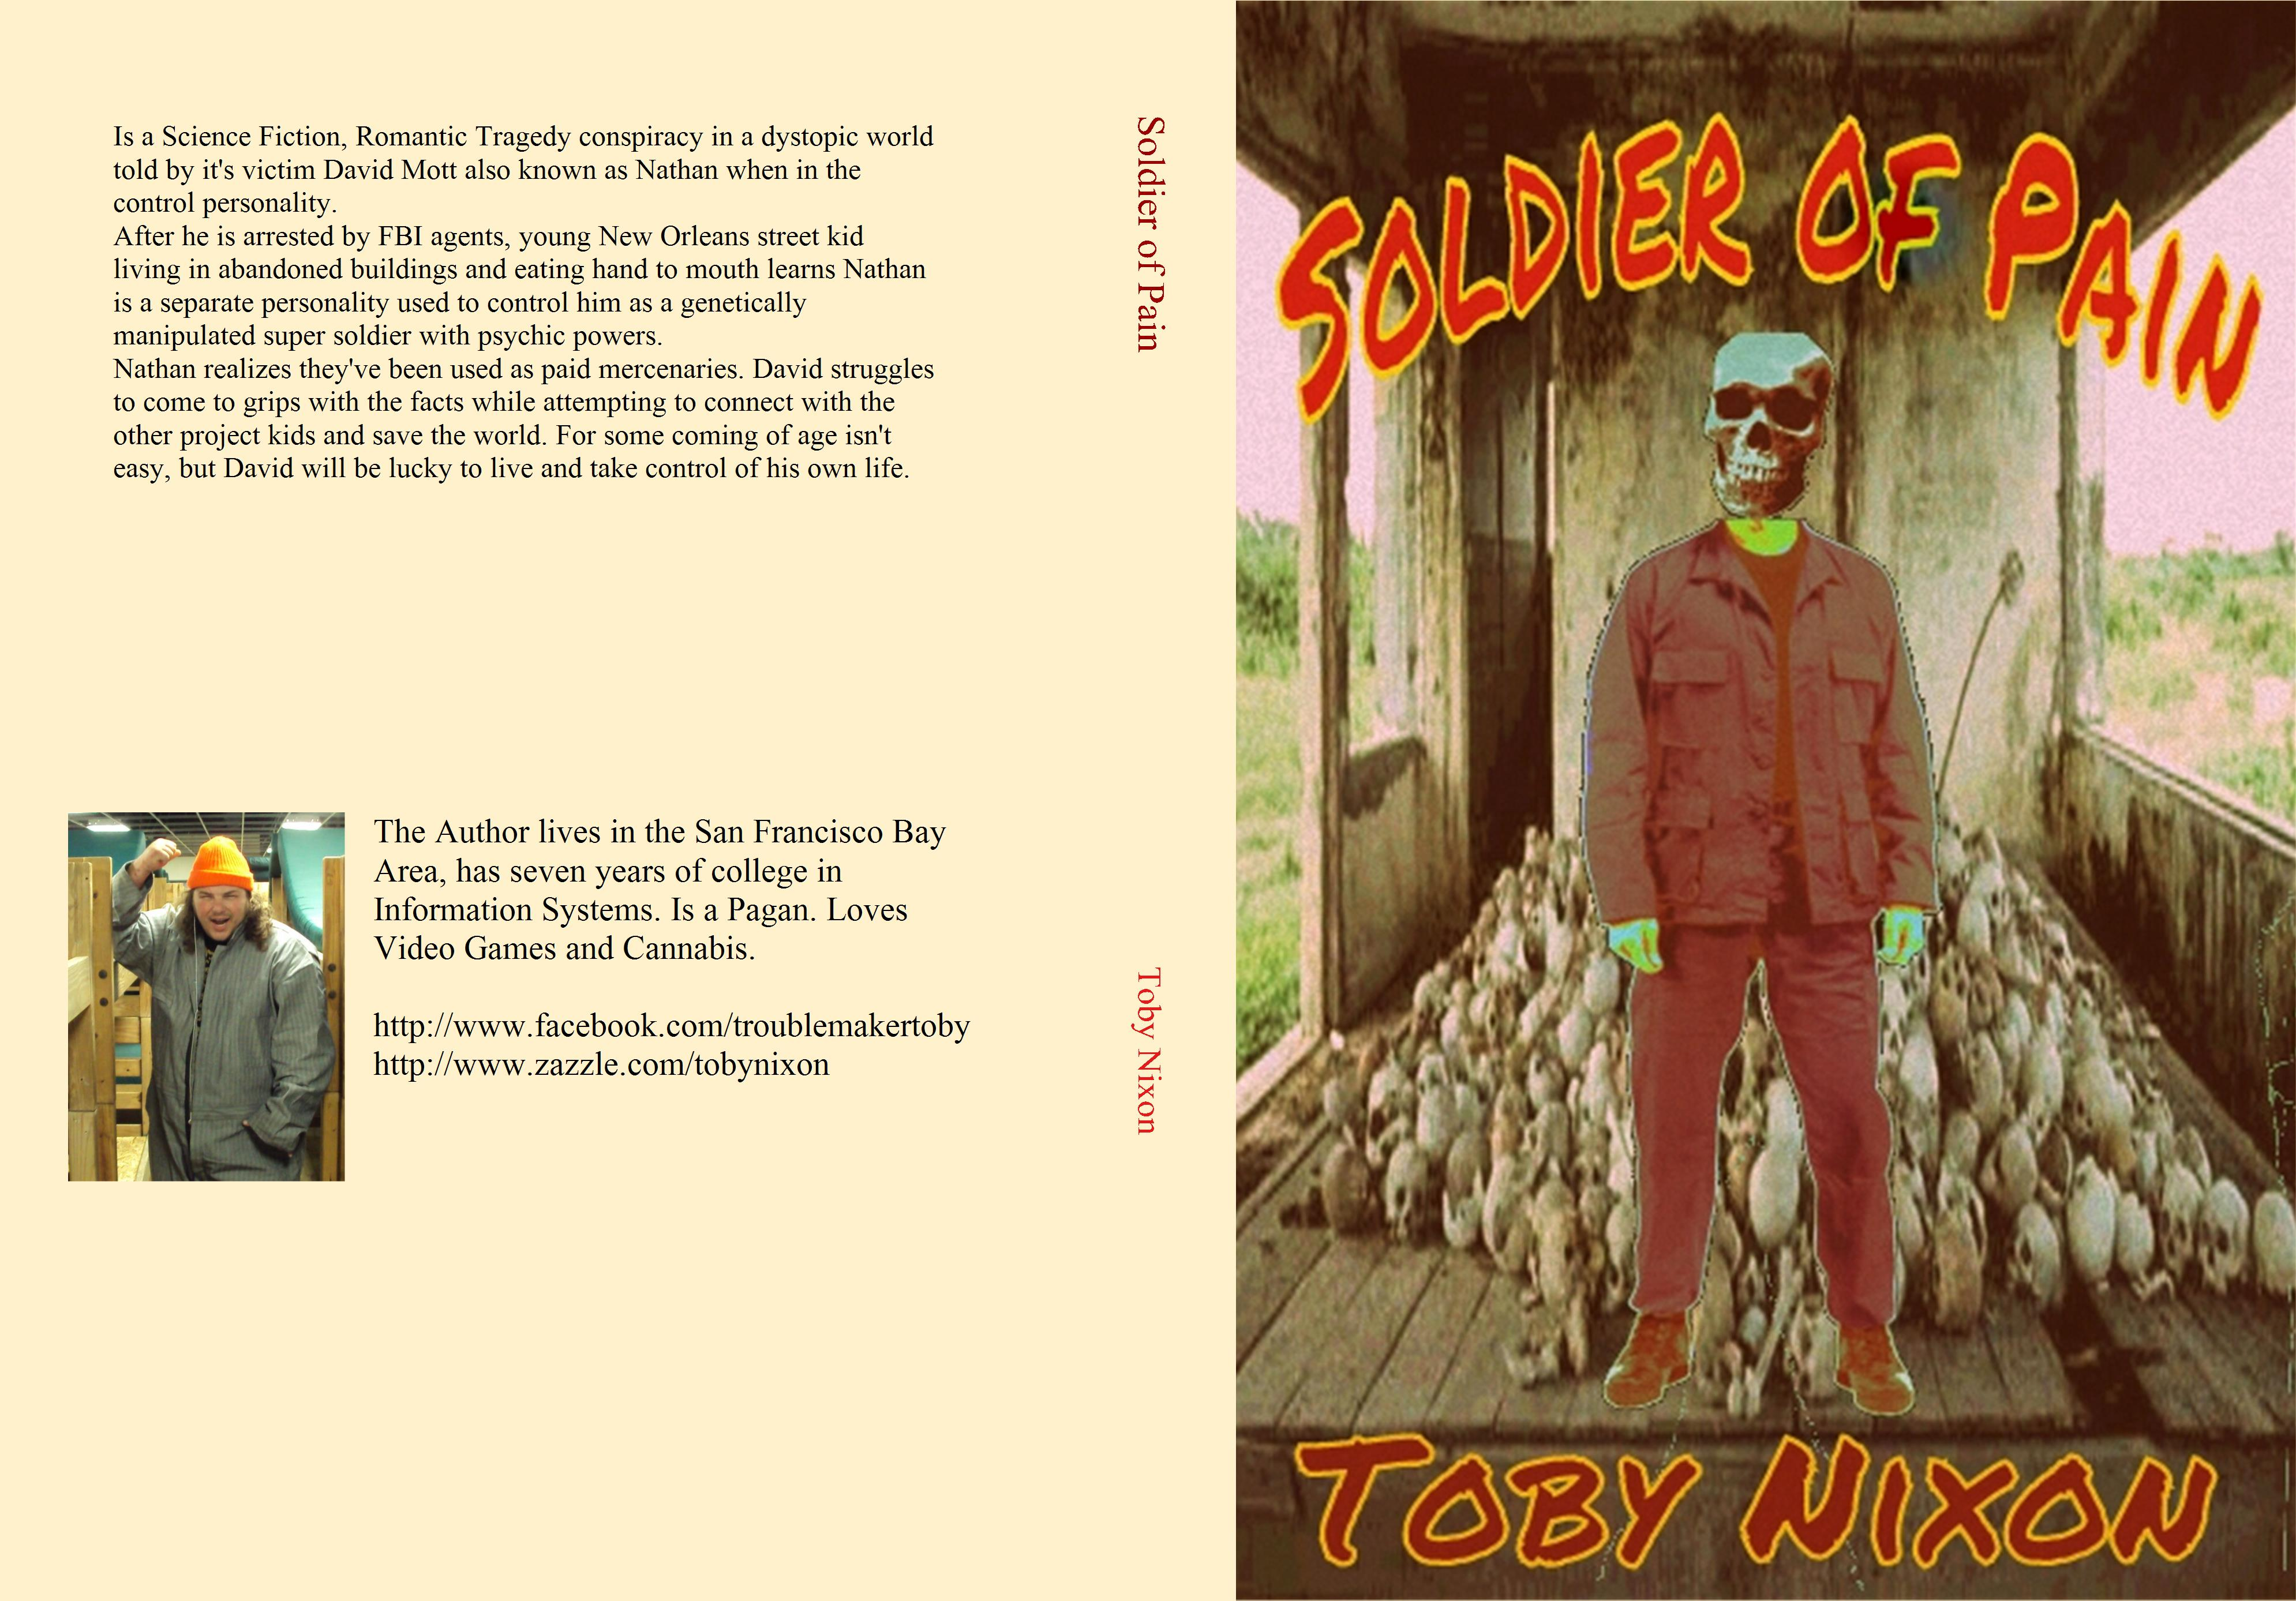 Soldier of Pain cover image